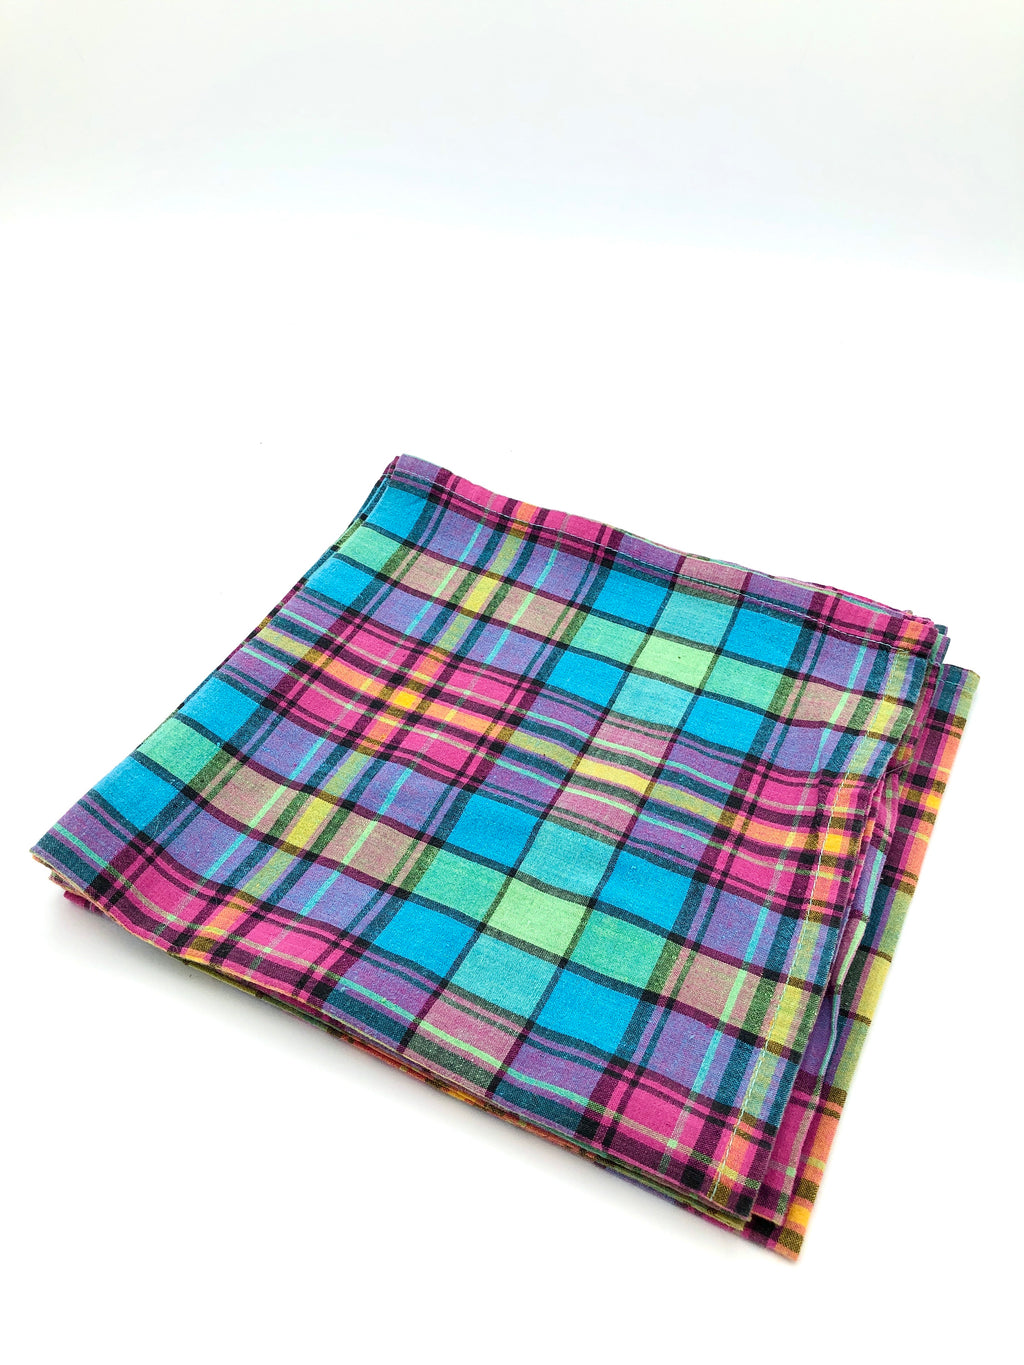 Vintage Bright Plaid Cloth Napkins